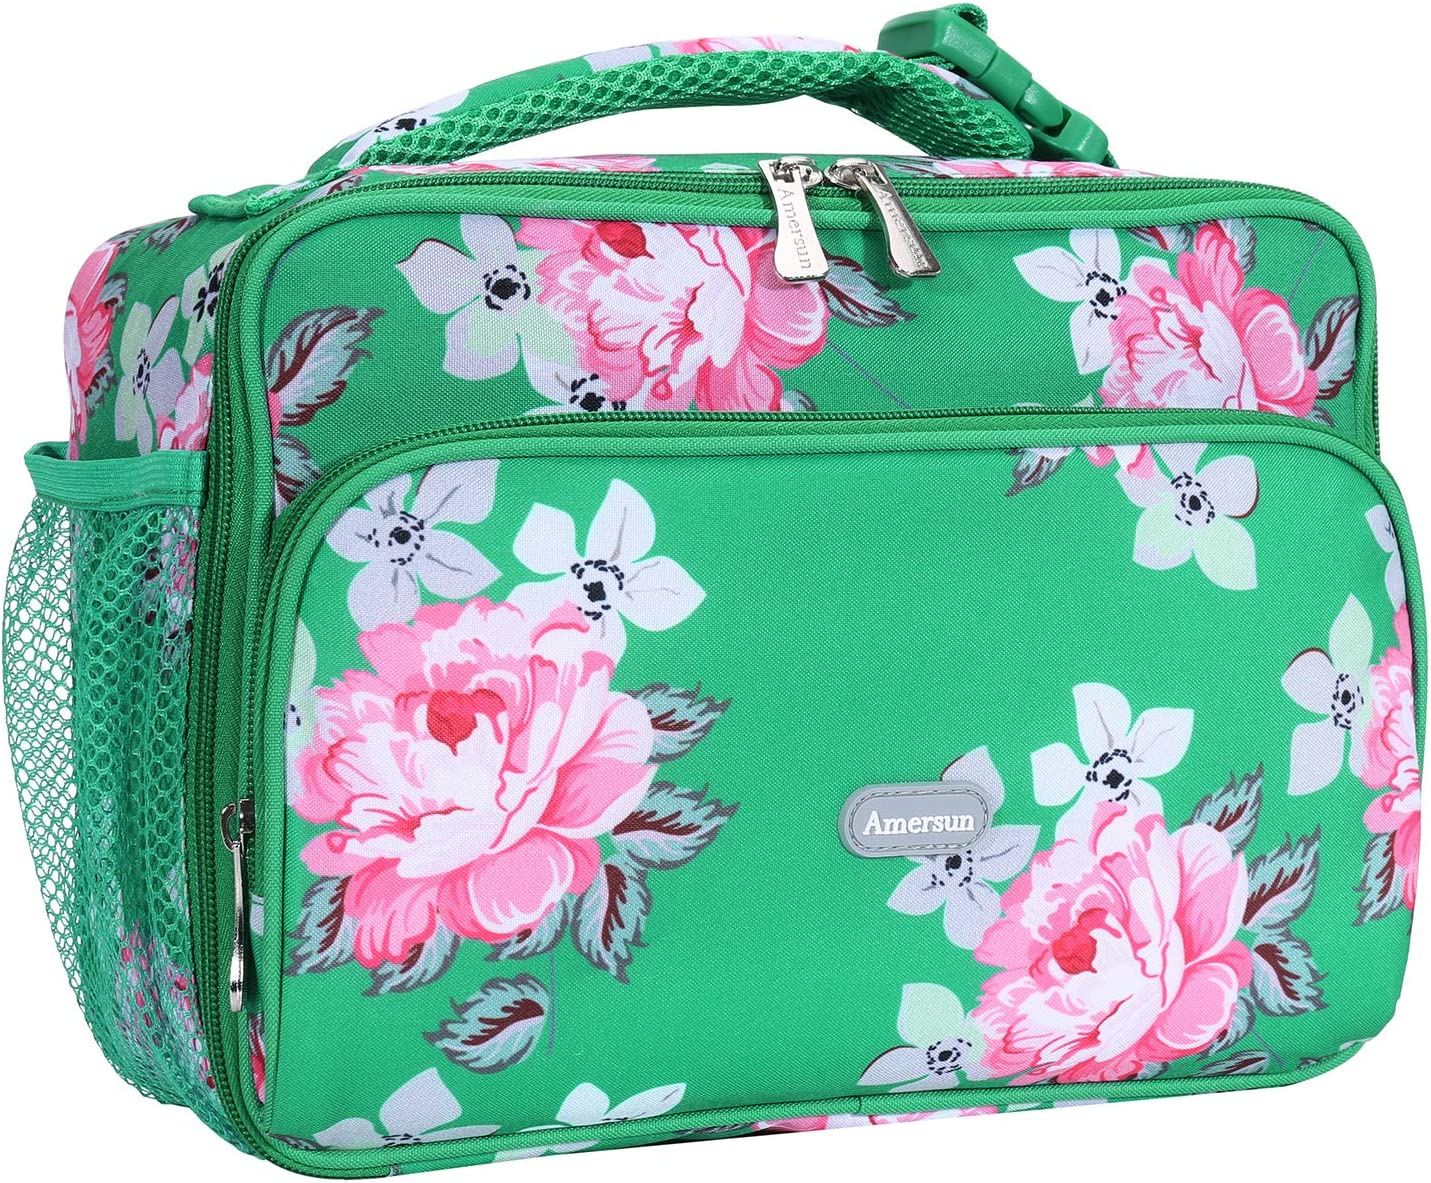 Amersun Lunch Bag for Women,Sturdy Insulated Lunch Box with Padded Liner Keep Food Warm Cold for Long Time, Thermal Lunch Cooler for Girl Adults Work Travel Picnic(2 Pocket,Peony Green)